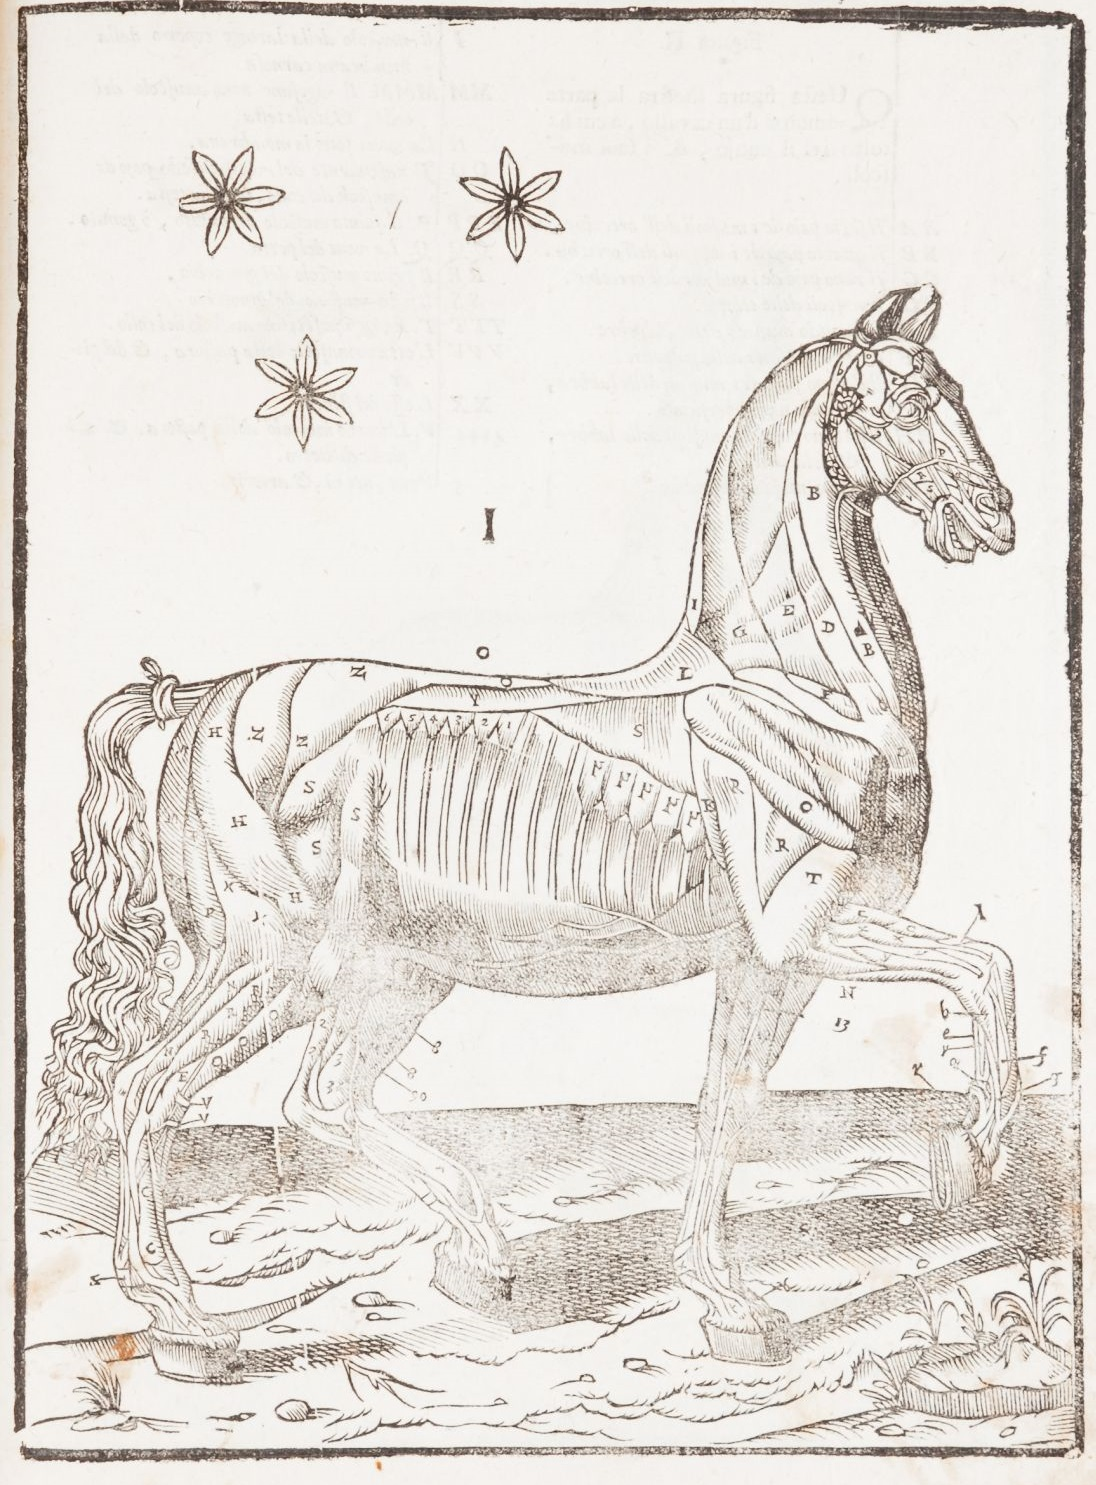 Online Sale: Antiquarian Books including two collections: Equestrian Books and 16th-century Editions